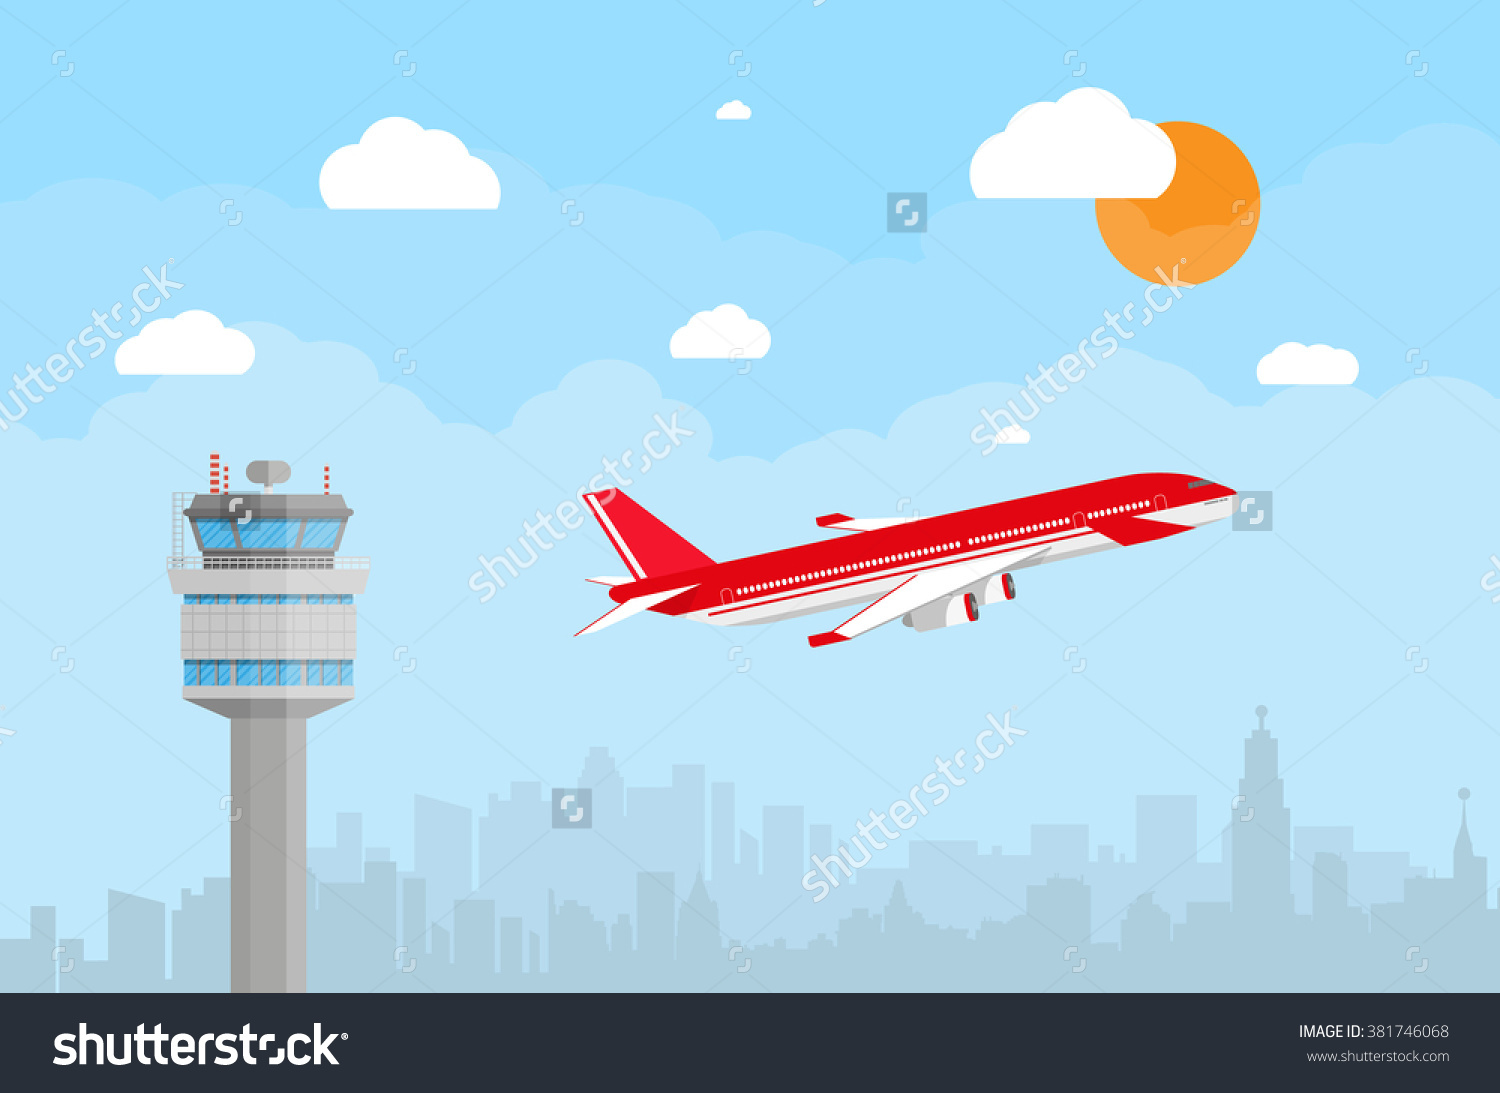 Cartoon Background Gray Airport Control Tower Stock Vector.